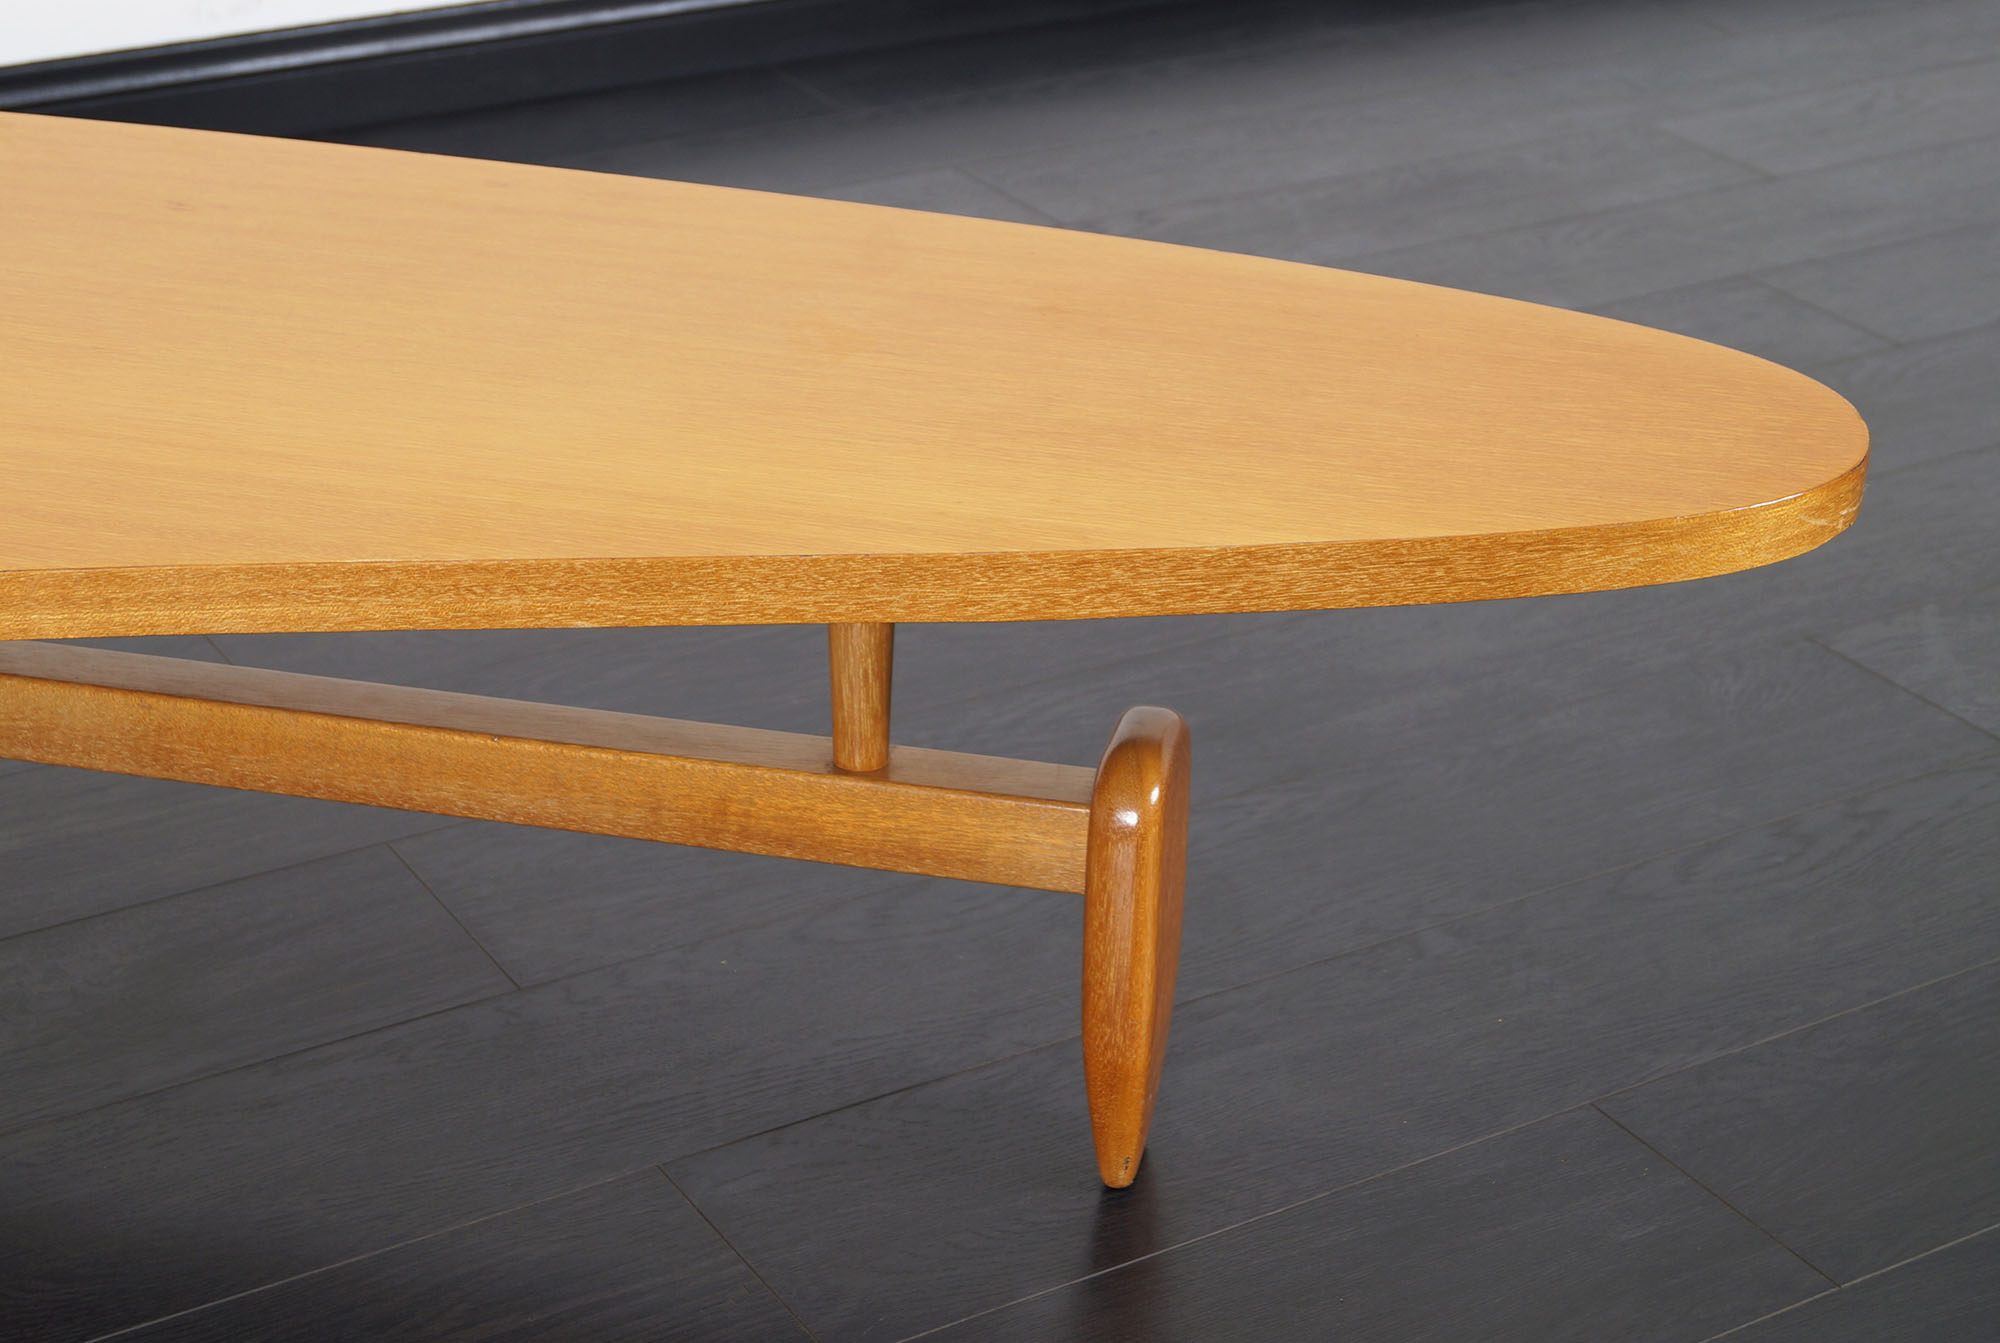 Vintage Outrigger Floating Top Coffee Table by John Keal